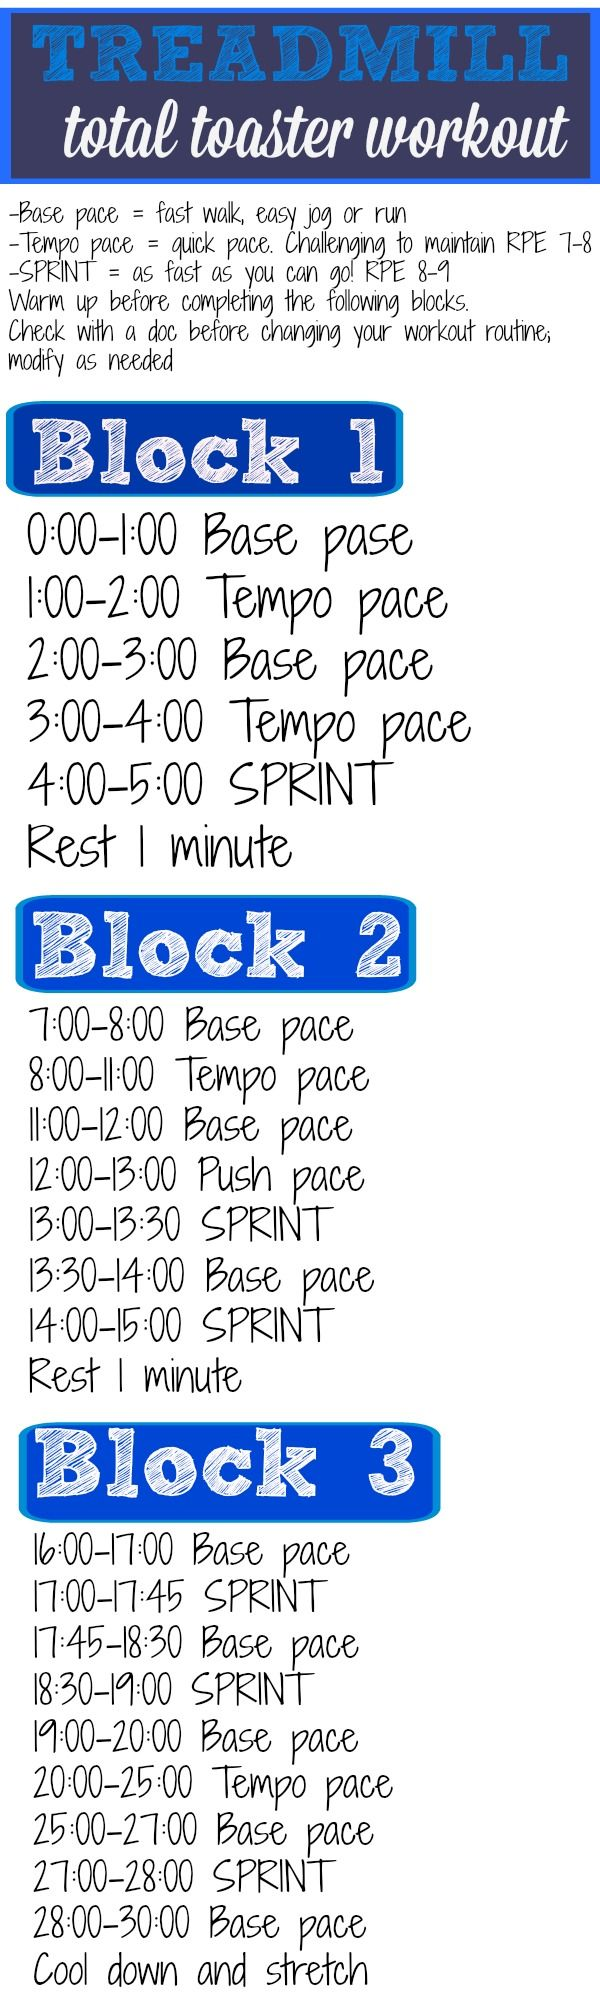 "Excited to try this tomorrow. I love the ""base pace/tempo pace/SPRINT pace"" idea instead of the HIIT guides. This allows you to set your own sprint workout without feeling like complete death, but knowing if you're really working or not. ""Treadmill total toaster workout."""